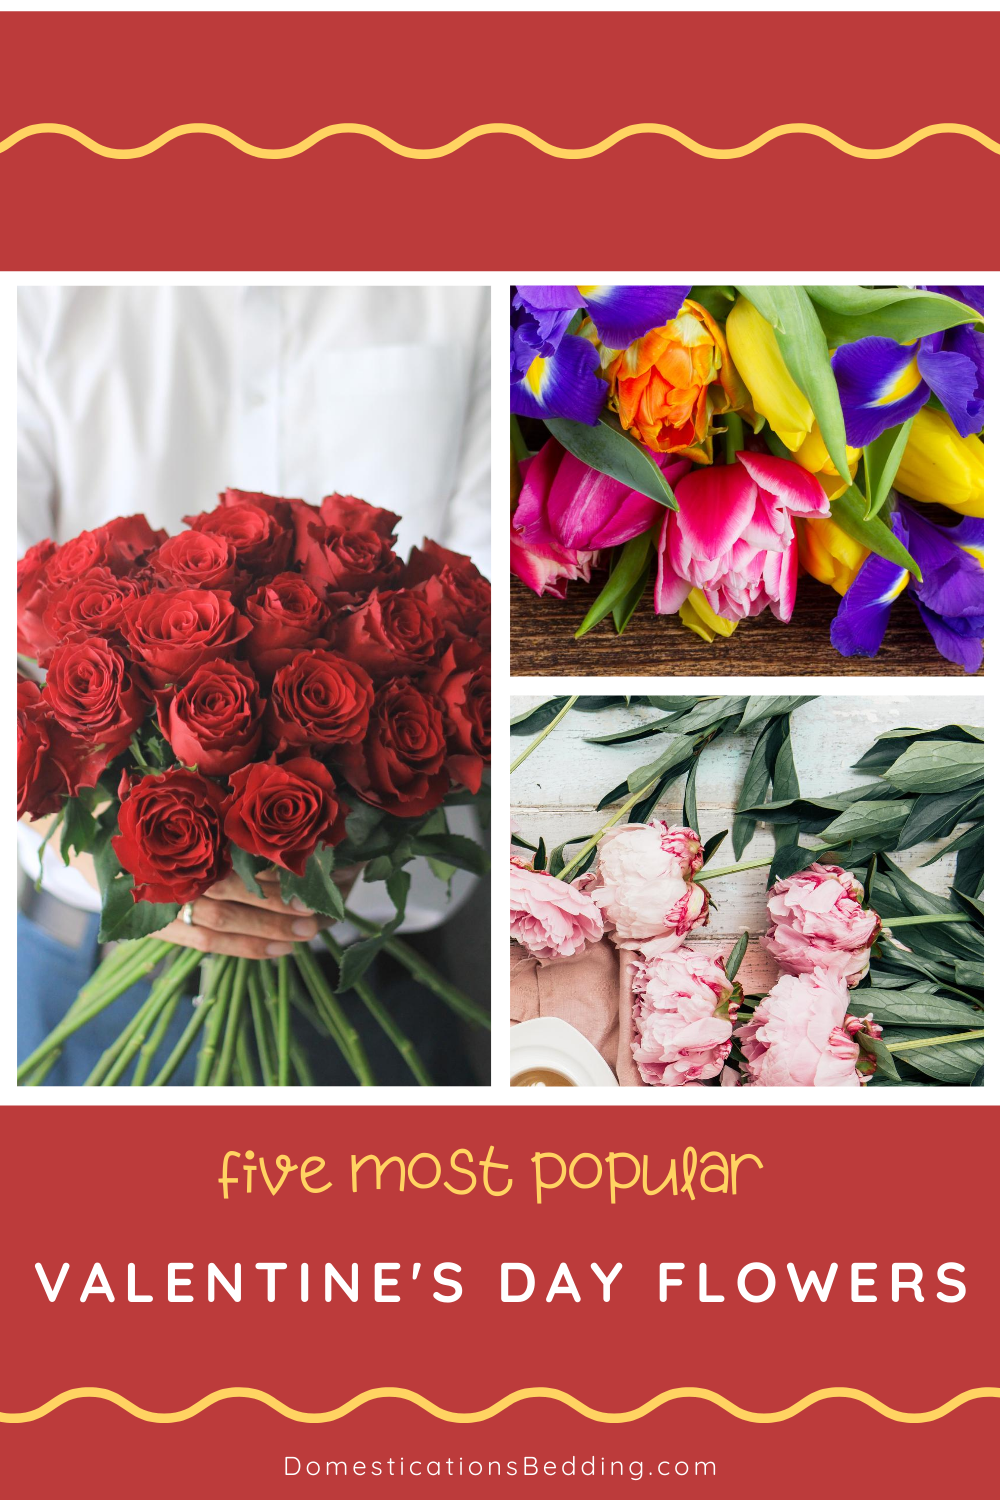 The 5 Most Popular Valentine's Day Flowers